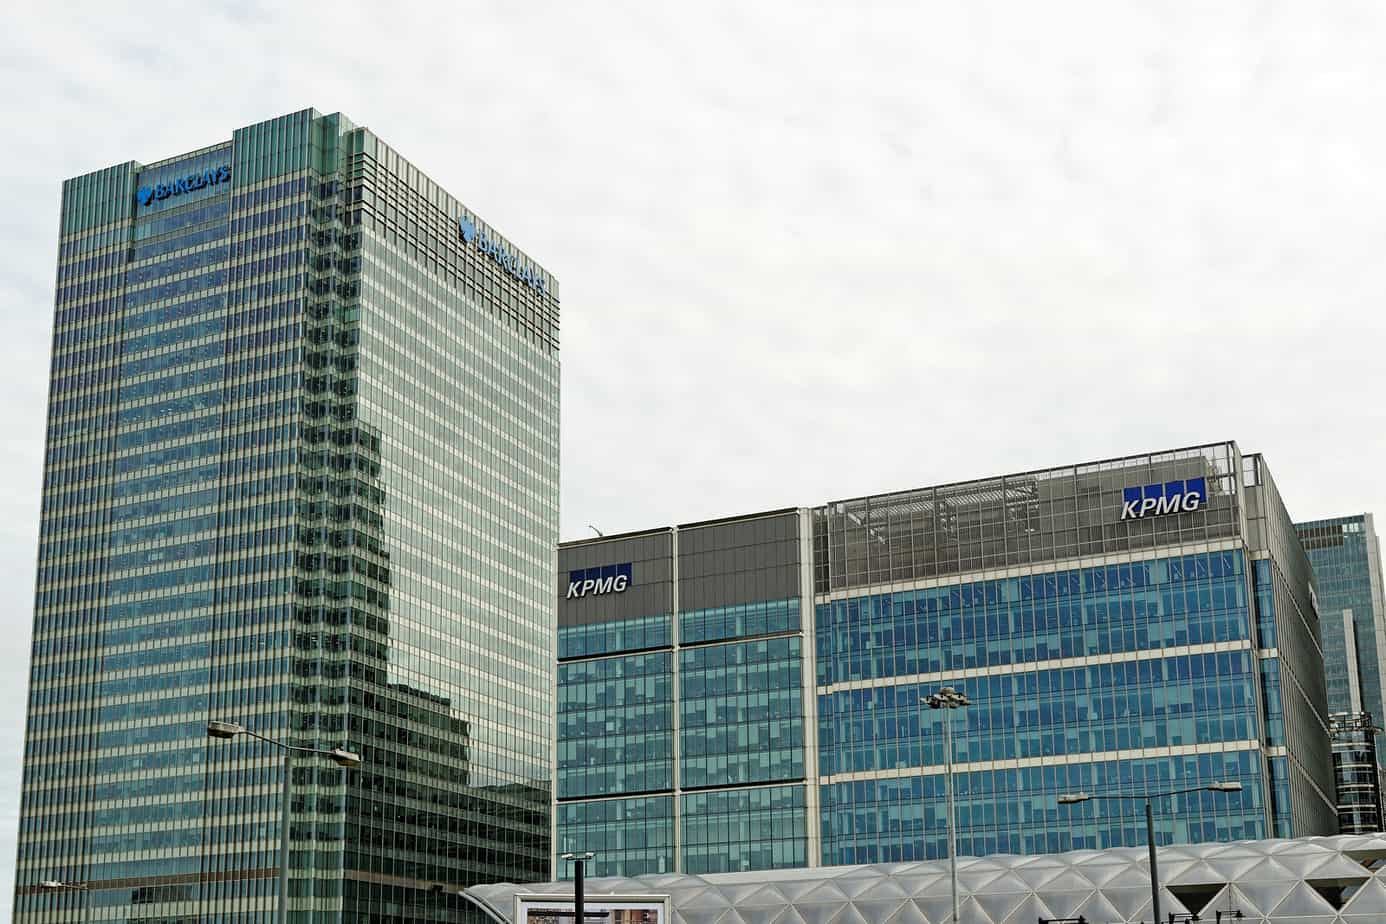 Kpmg Fires 6 Over Ethics Breach On Audit Warnings The New